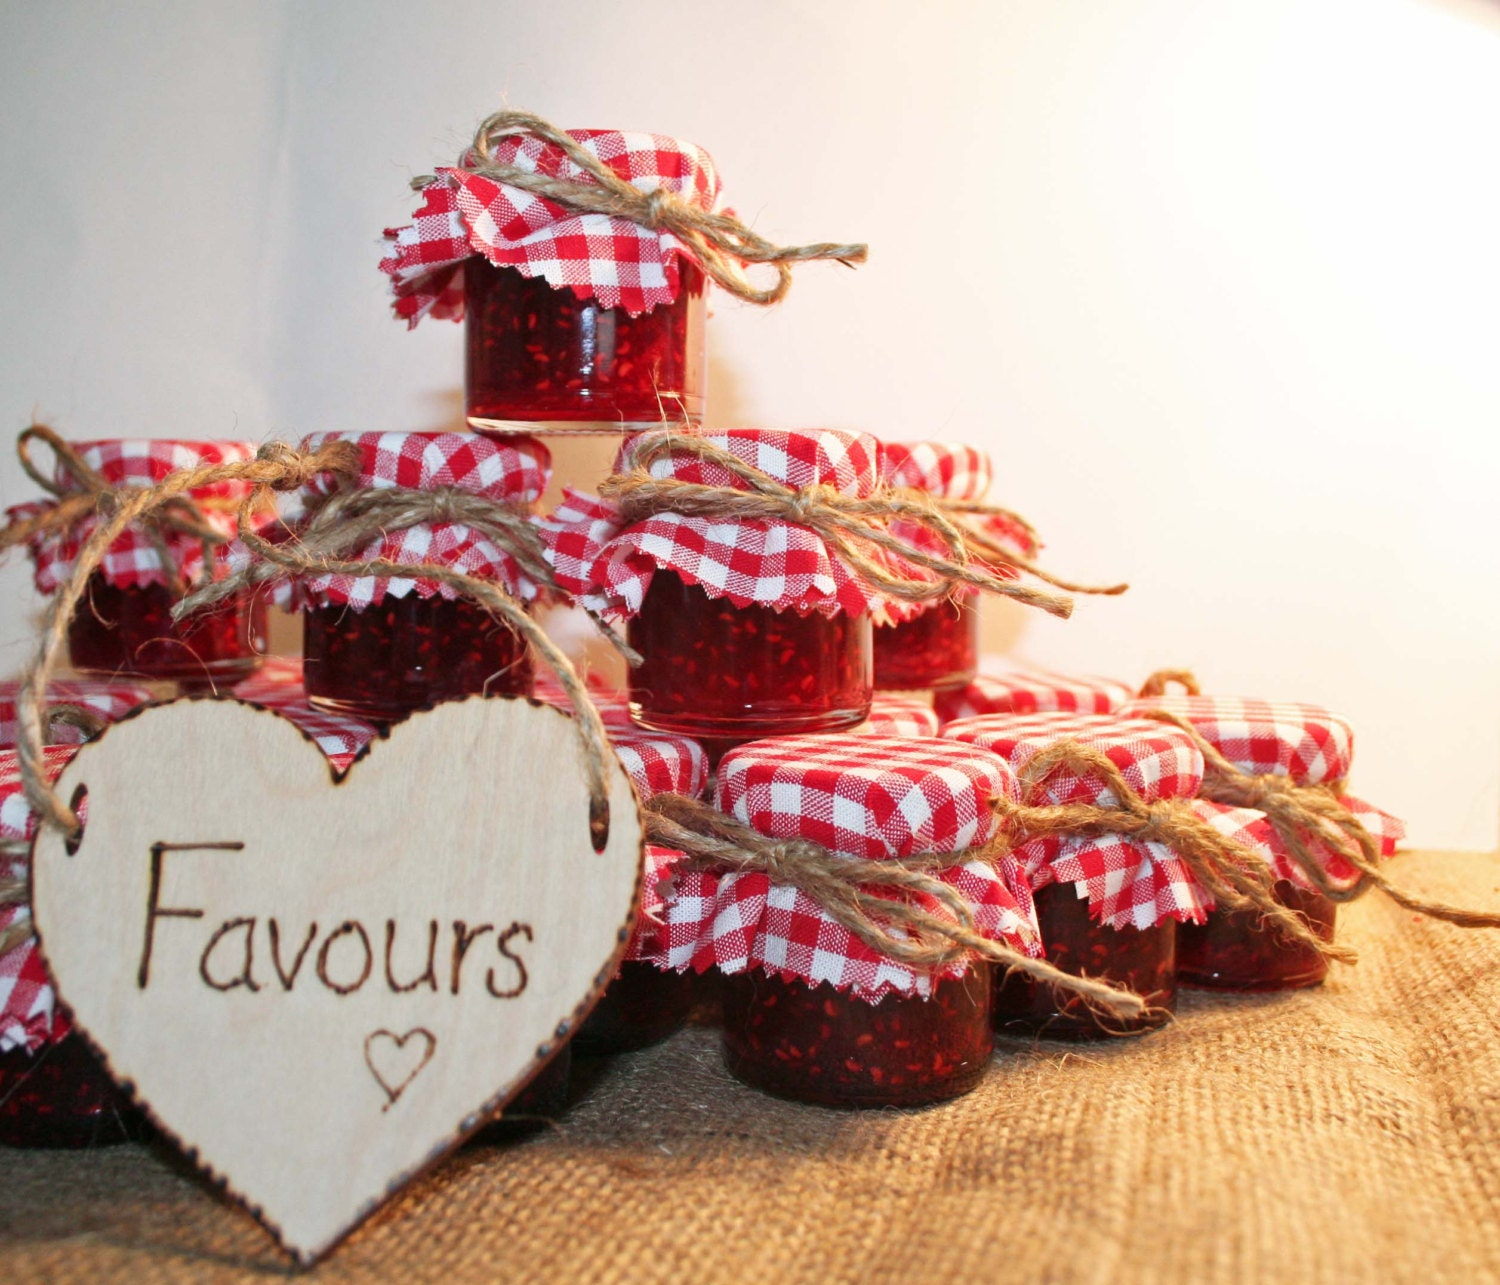 DIY Jam Jar Wedding Favours With Red Gingham Fabric Covers